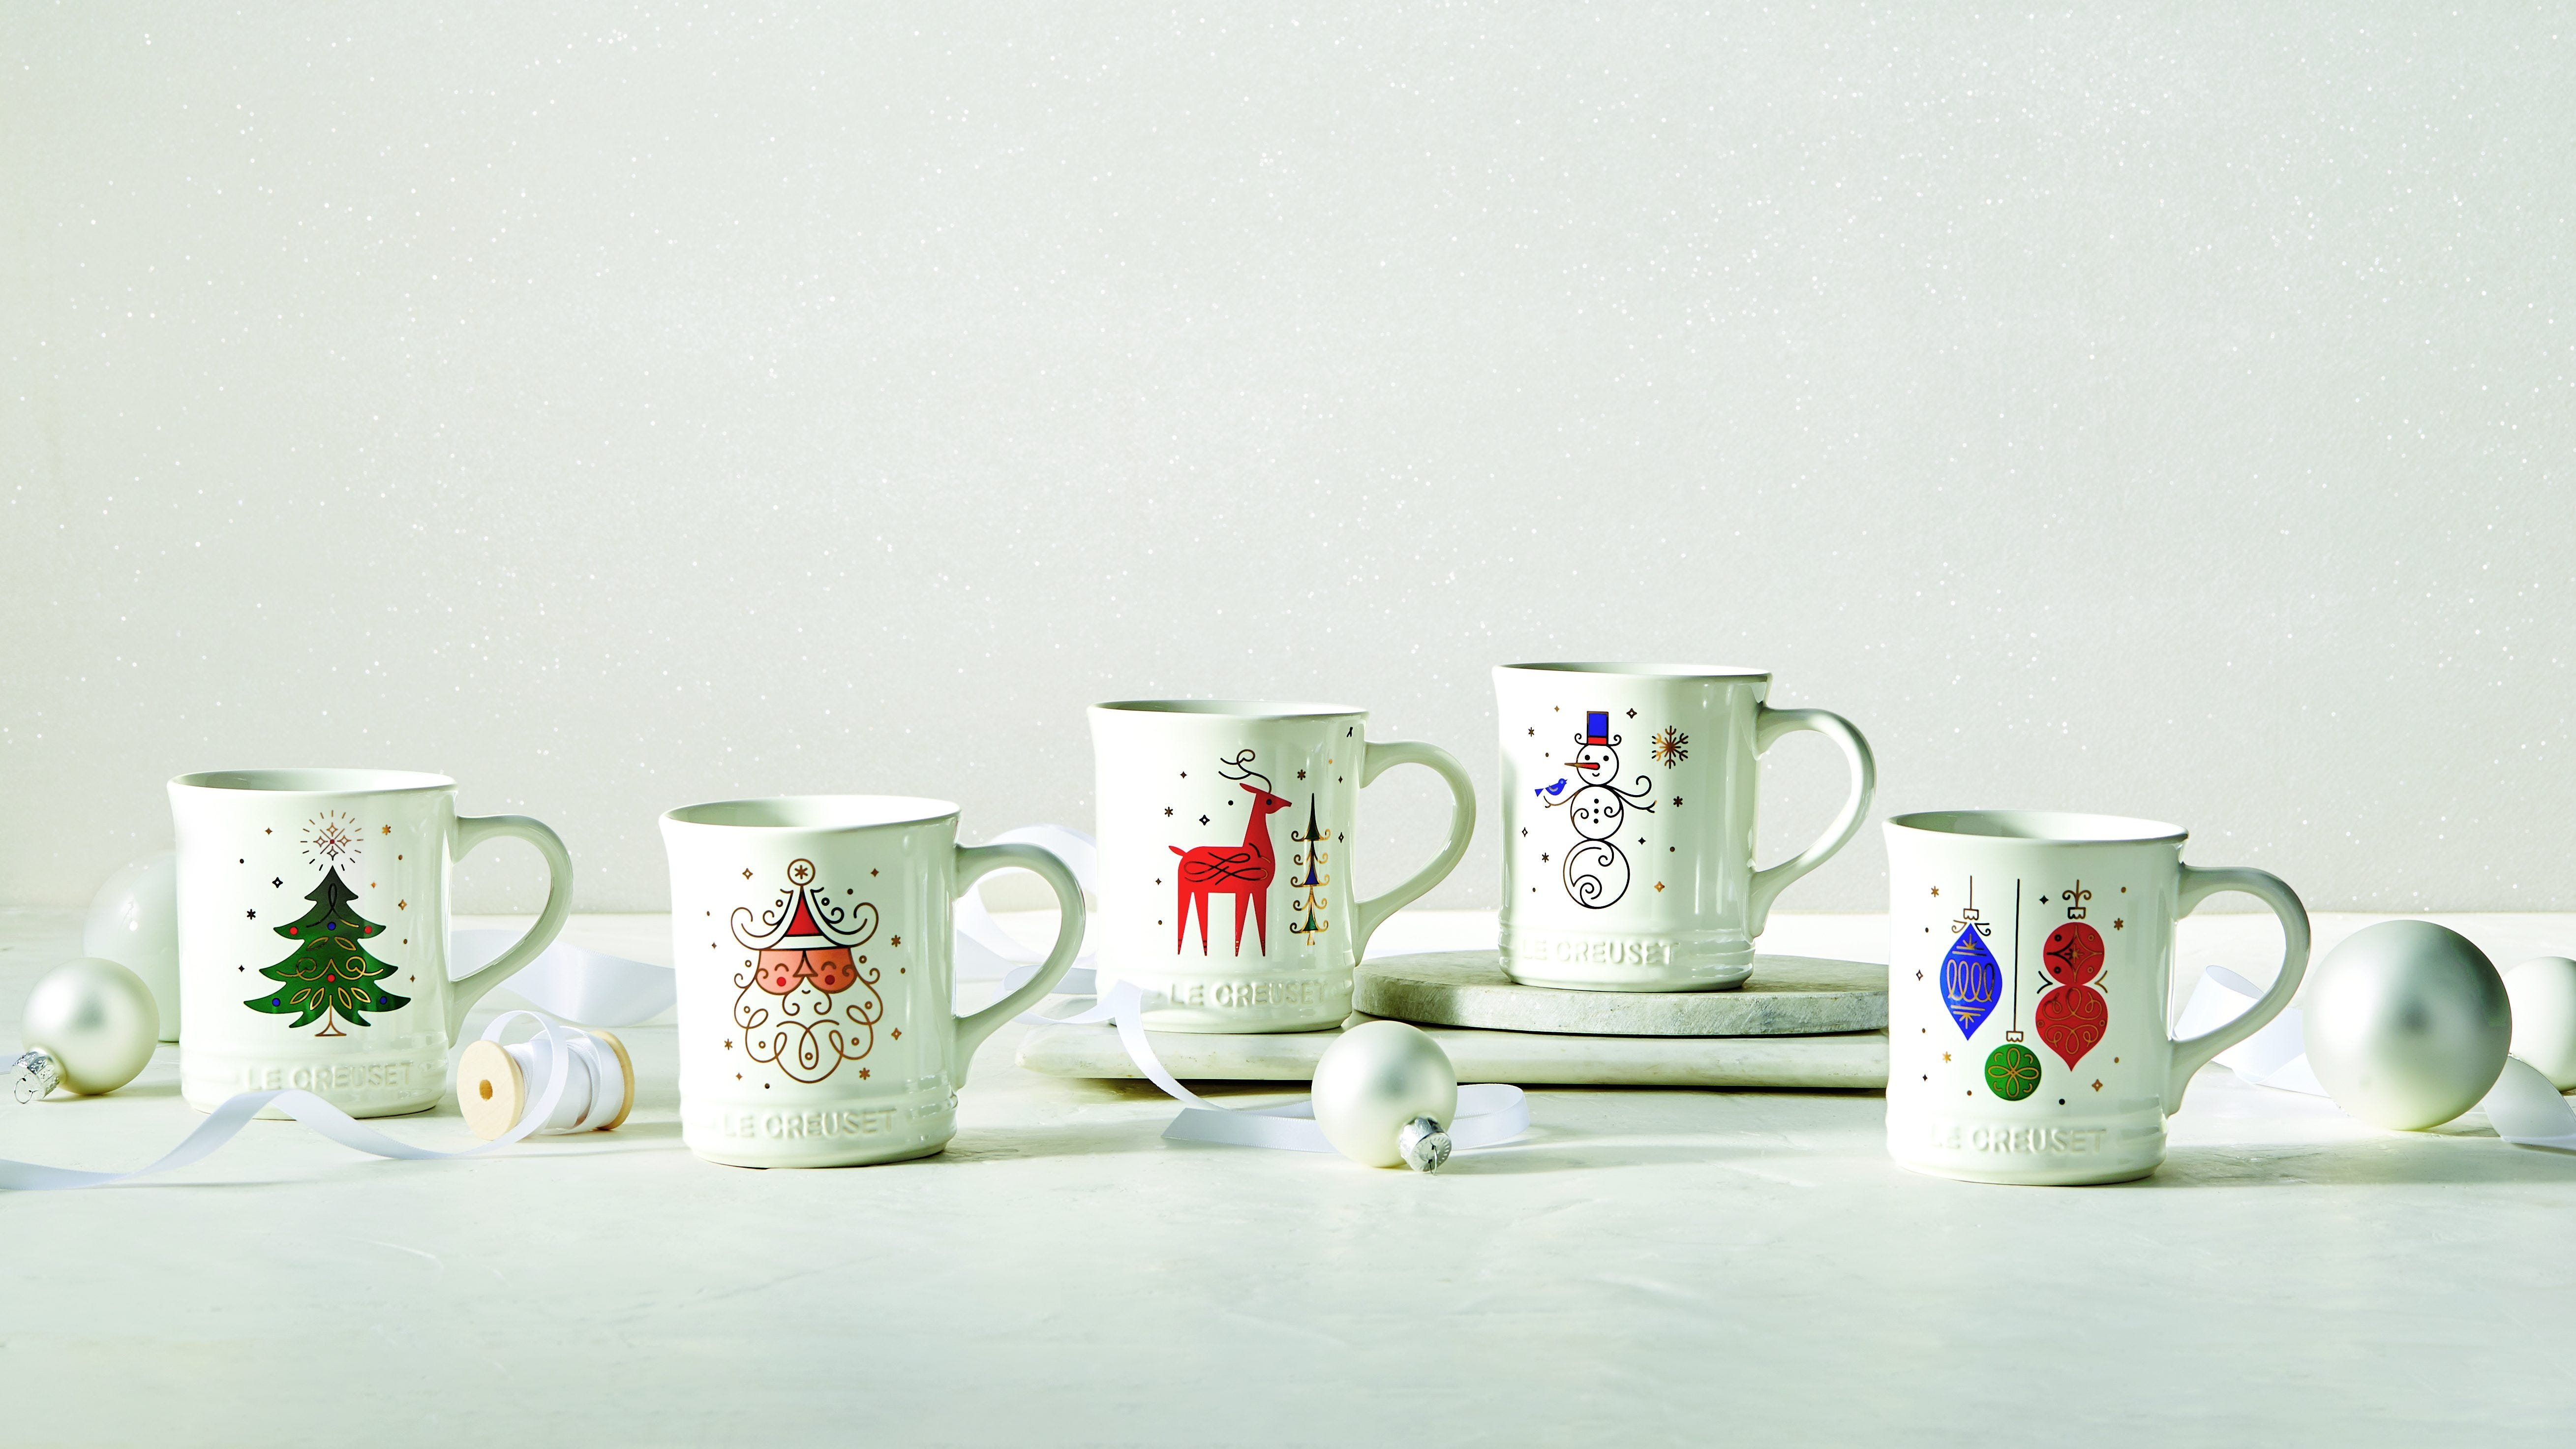 A collection of white mugs with deer, Santa, and ornaments sit arranged on a countertop.